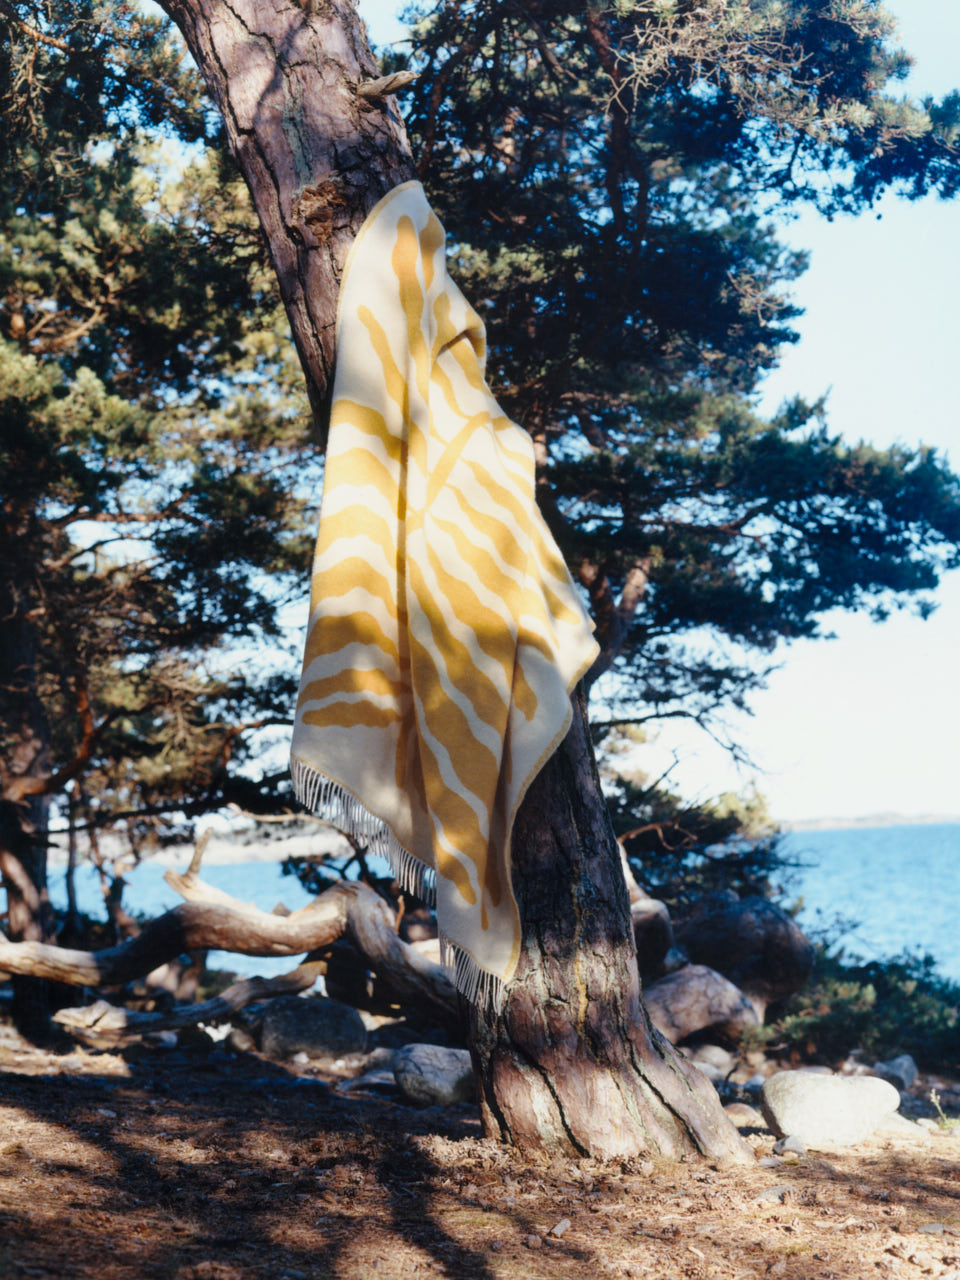 A blanket from ARKET Homeware hanging from a pine tree